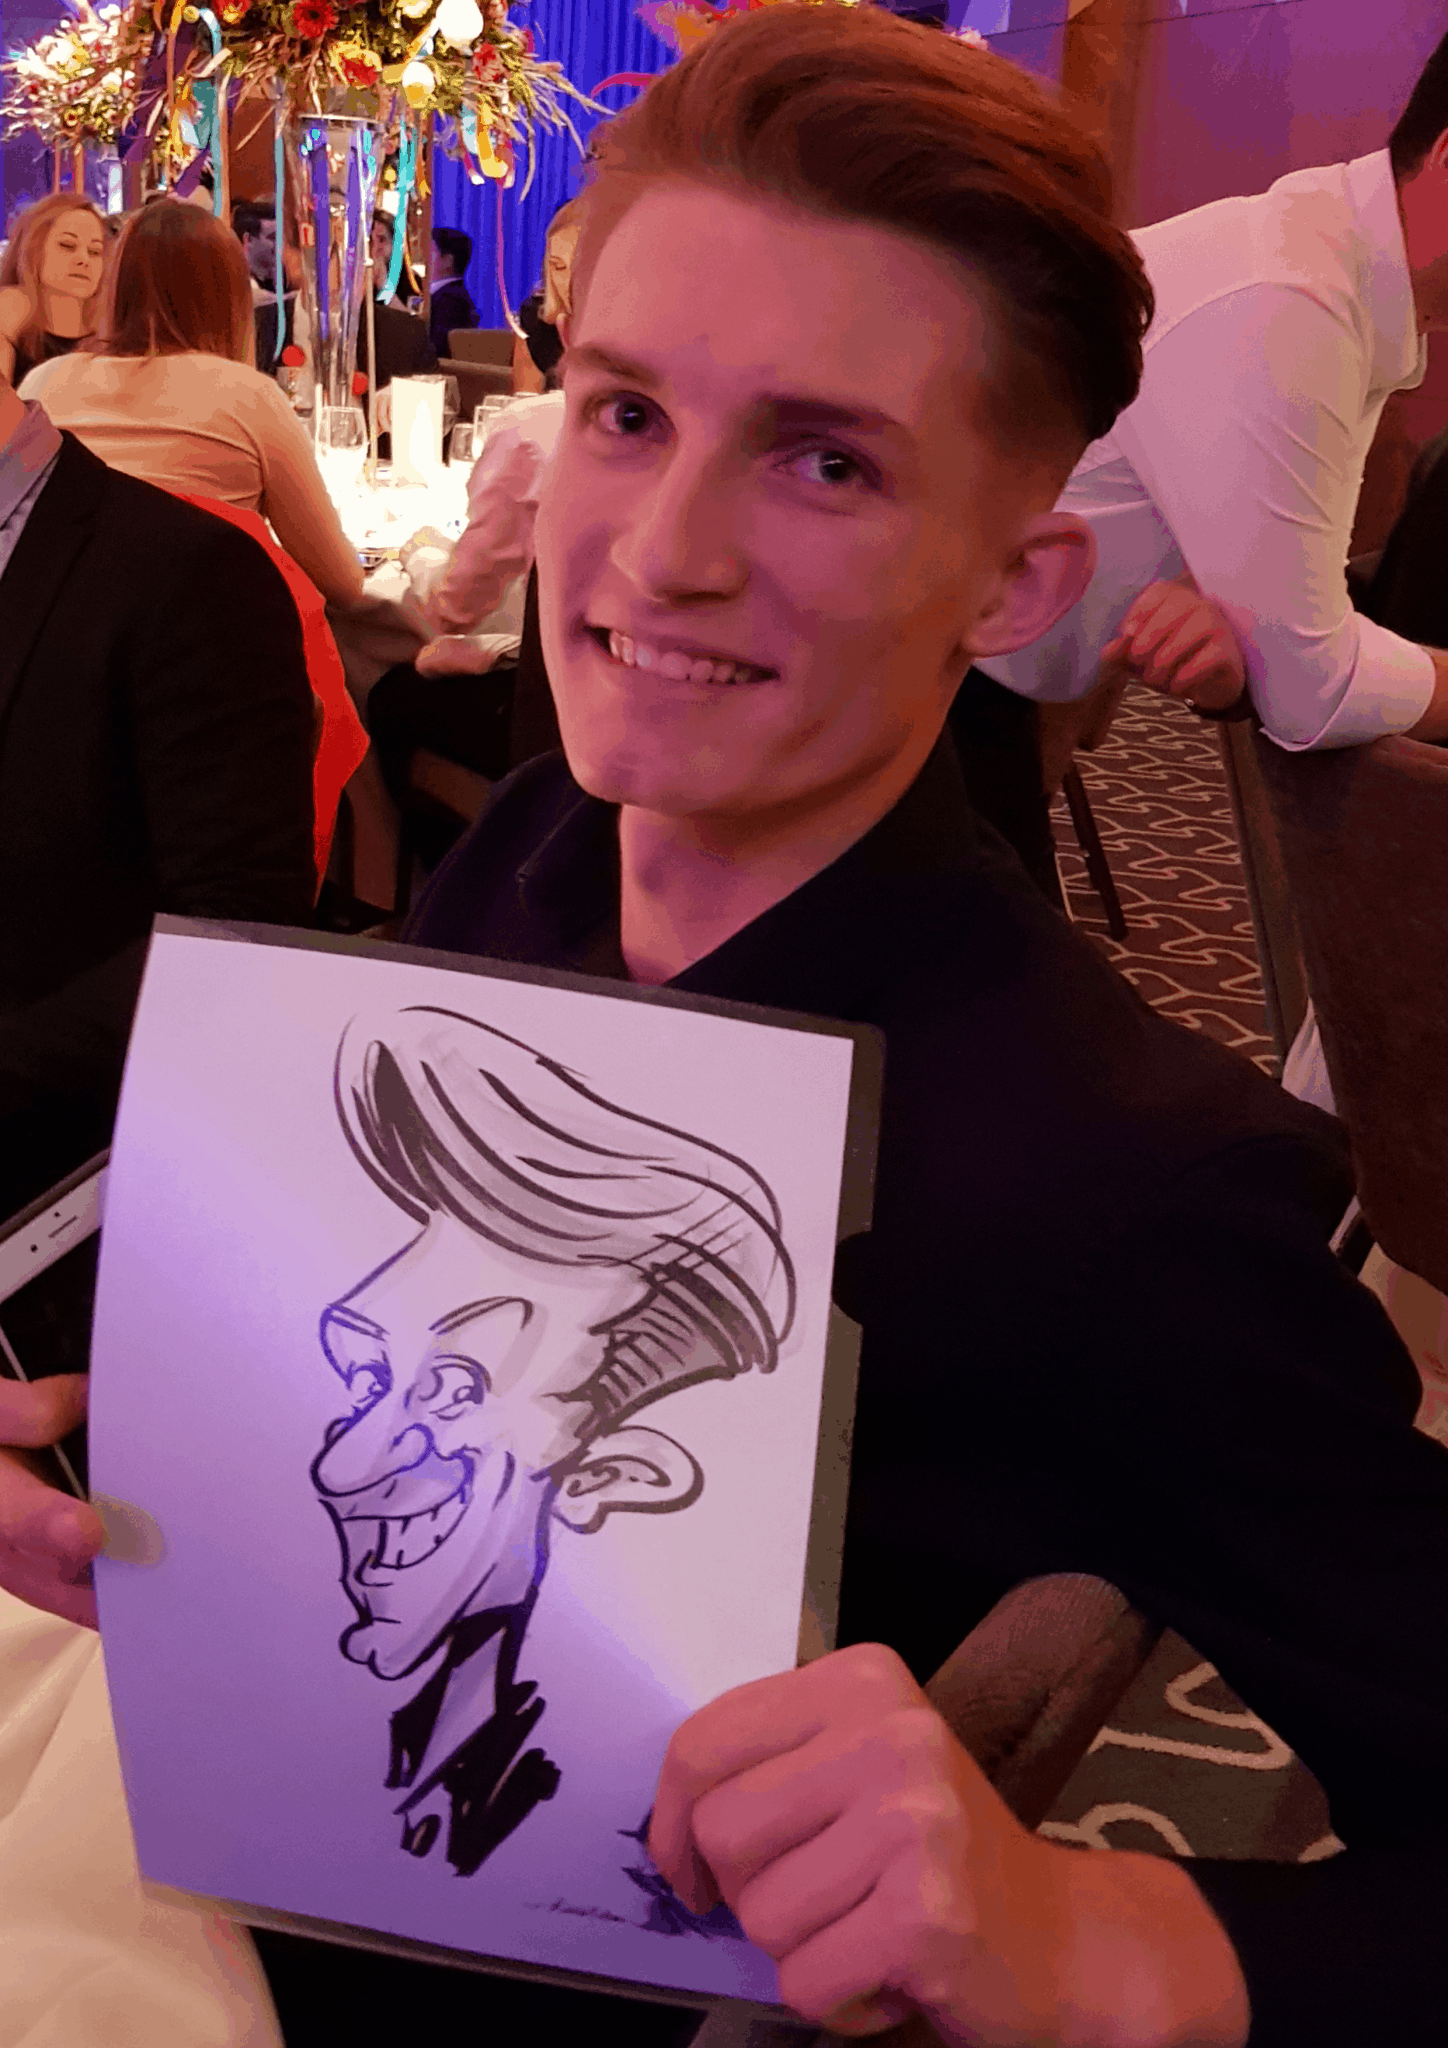 Wedding caricatures – by Wicked Caricatures Ltd